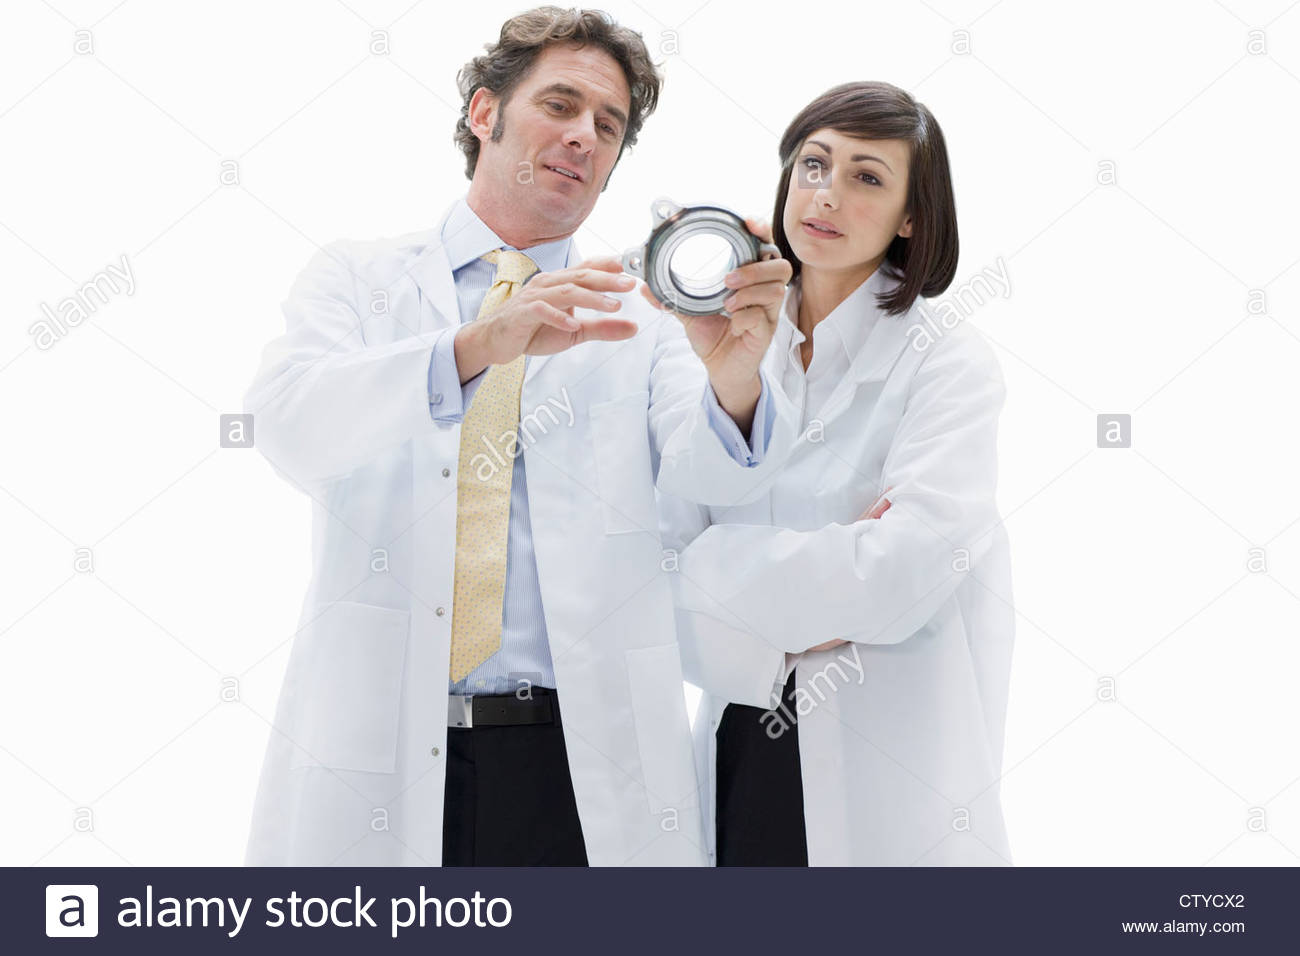 Cut Out Of Male And Female Engineers Discussing Component - Stock Image